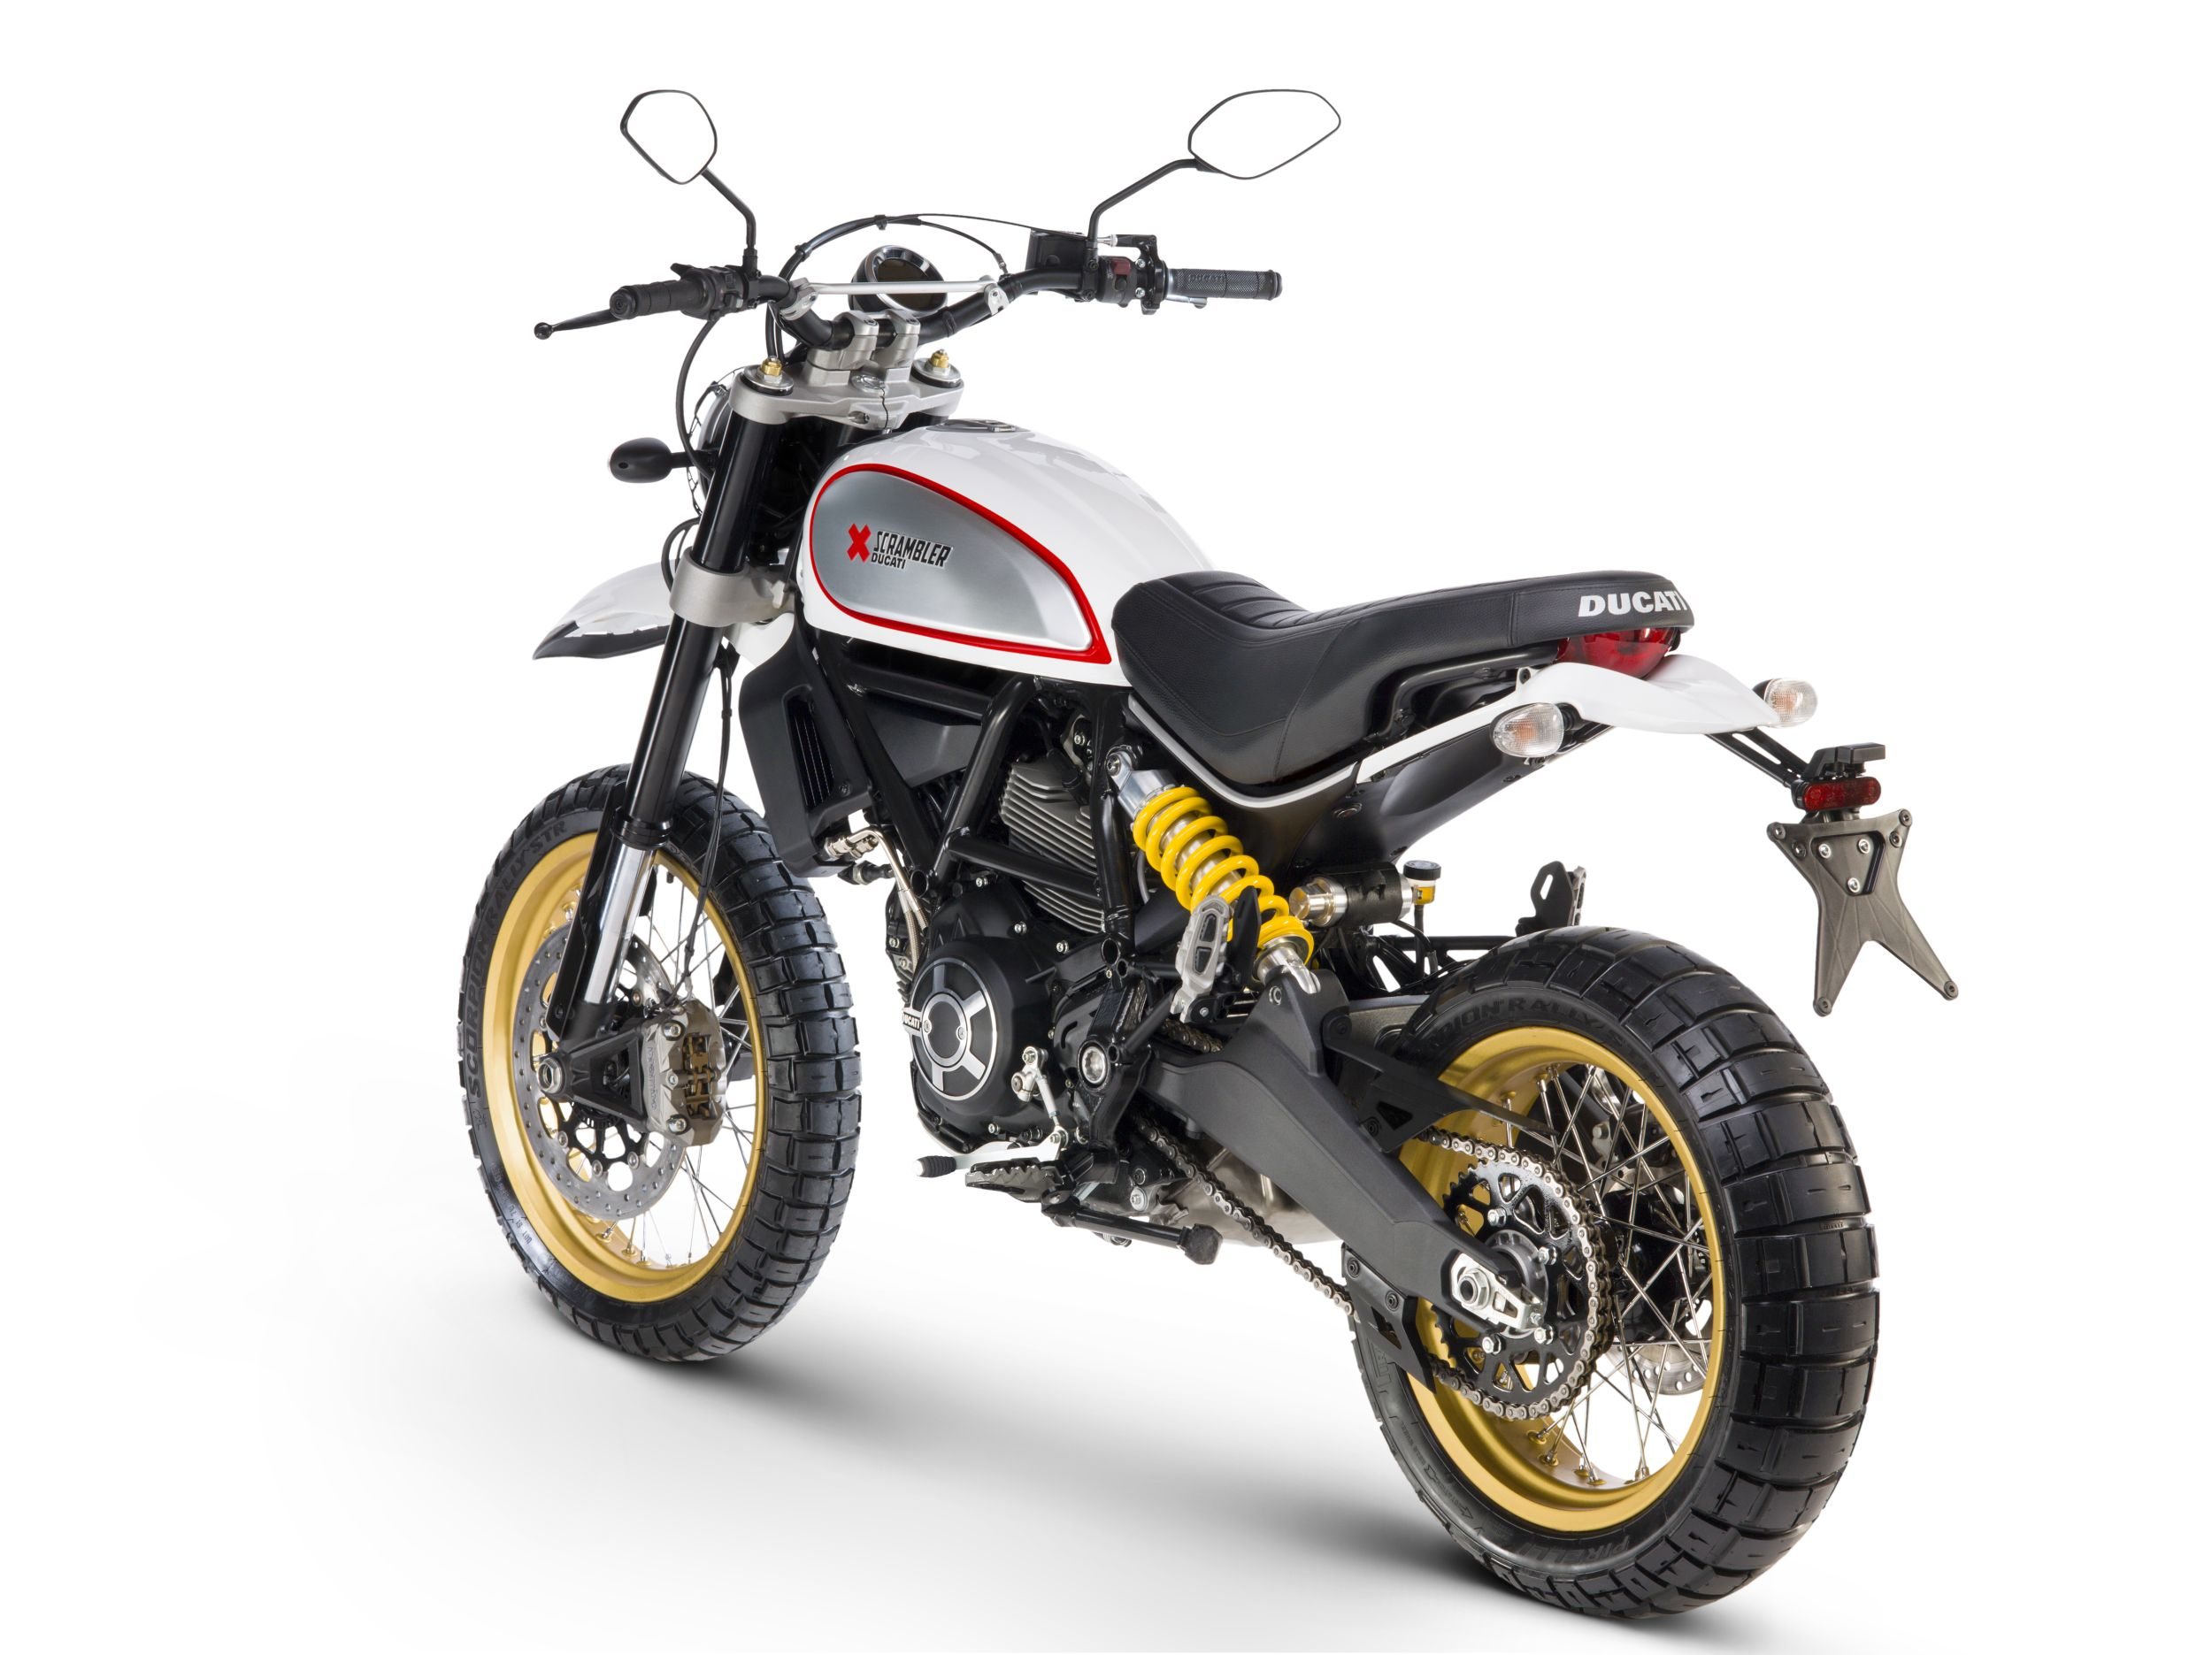 gebrauchte ducati scrambler desert sled motorr der kaufen. Black Bedroom Furniture Sets. Home Design Ideas